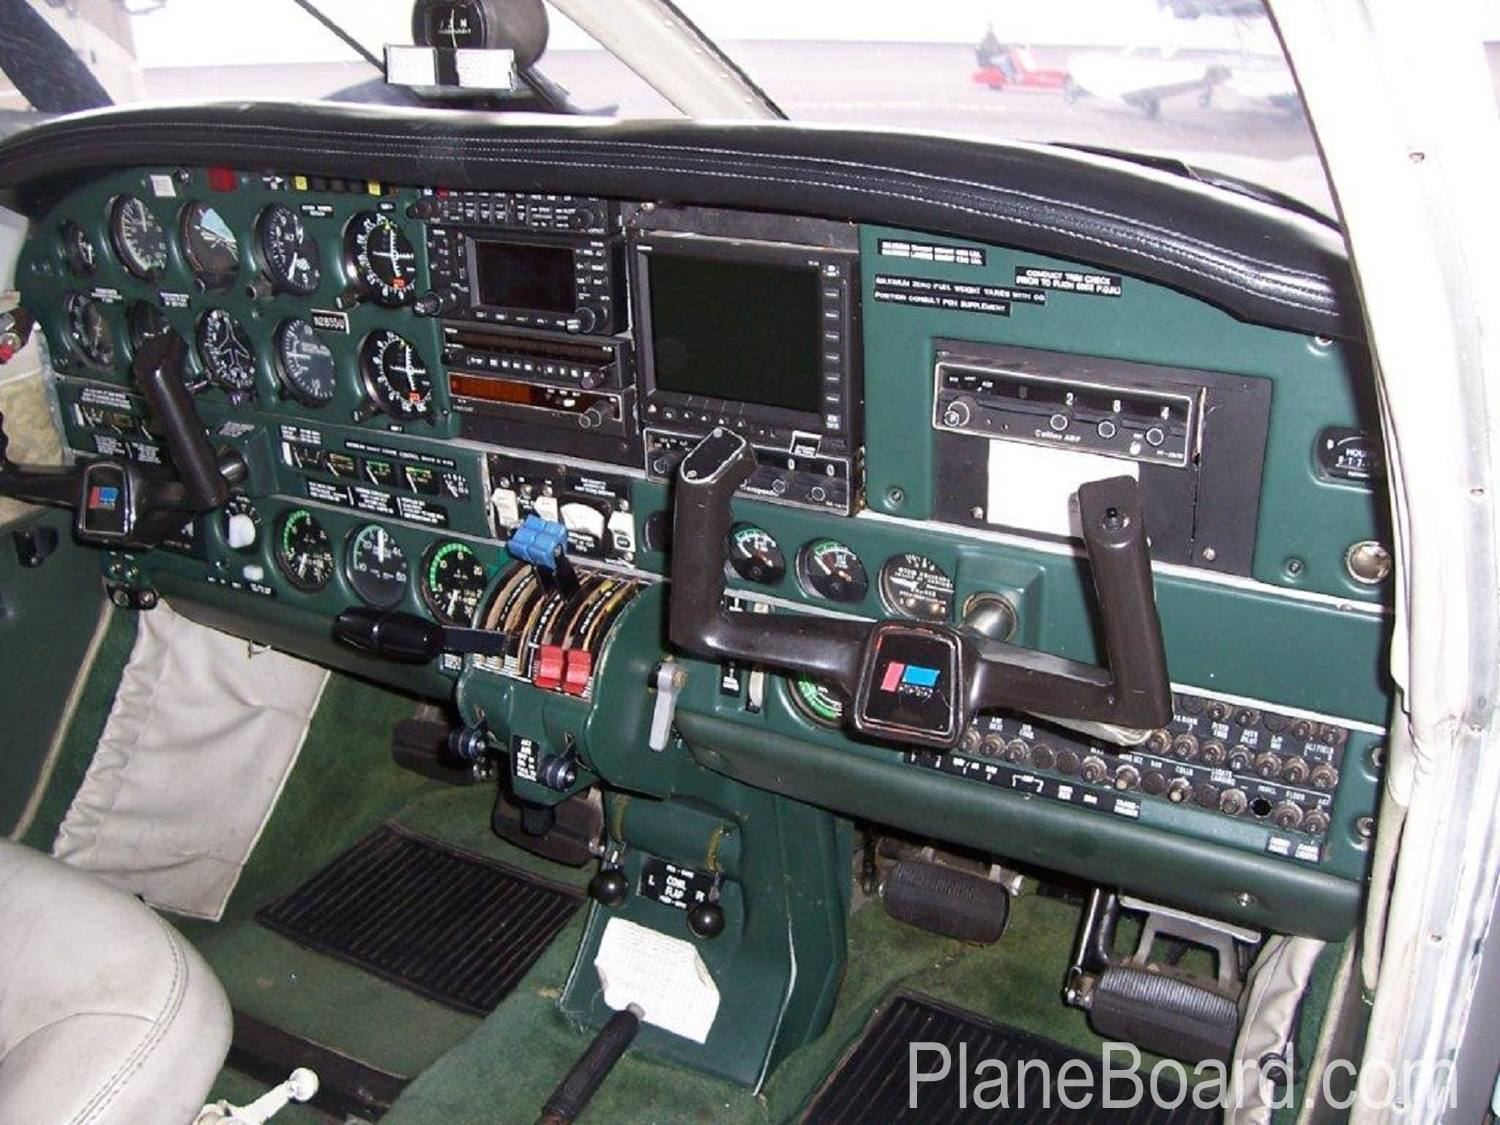 1979 Piper Seneca II for sale (N2855U) | PlaneBoard